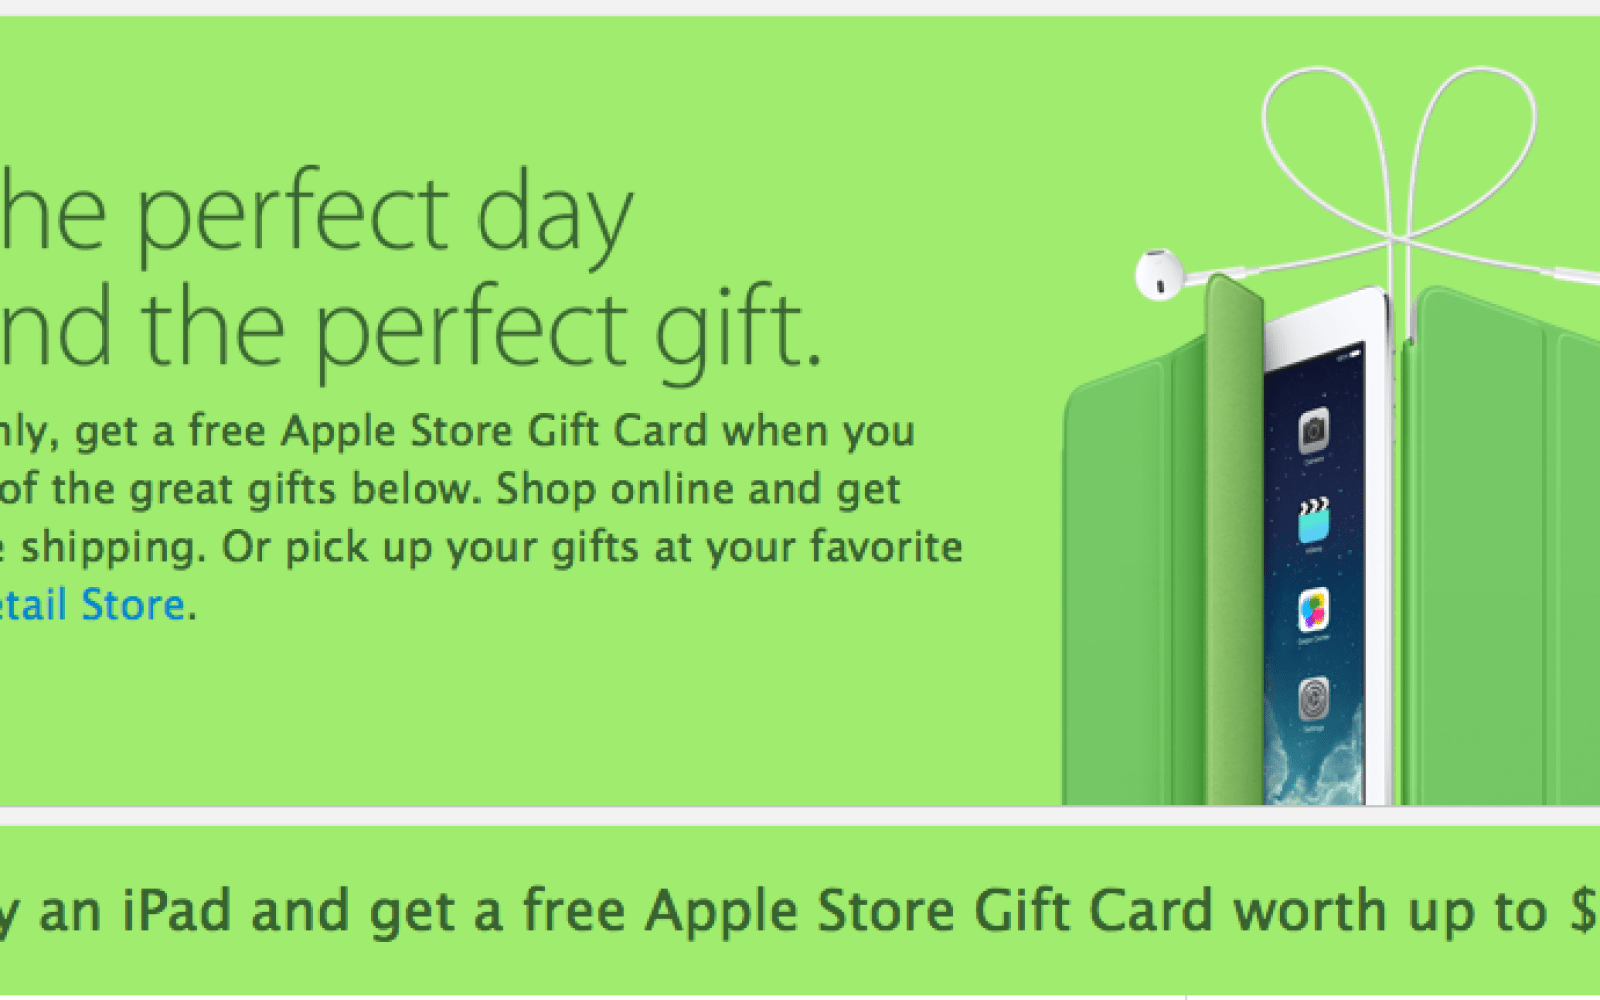 Apple's US & Canada Black Friday deals are confirmed as gift cards